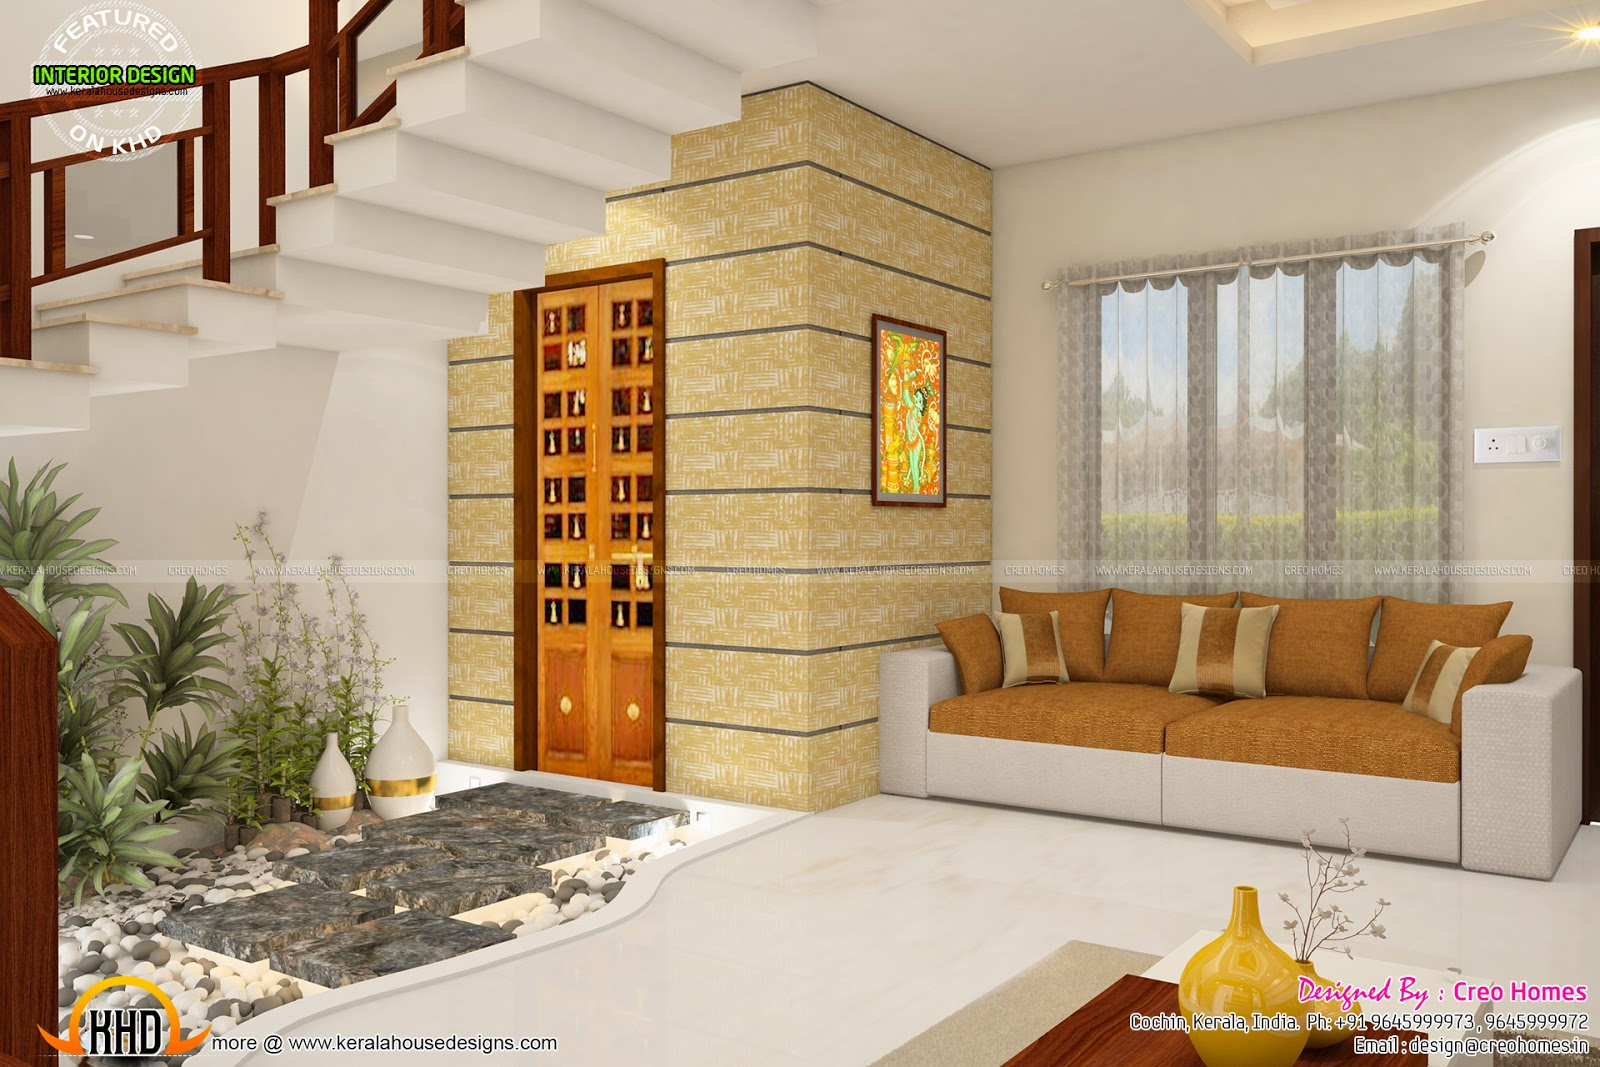 Total home interior solutions by creo homes kerala home for Interior house design pictures